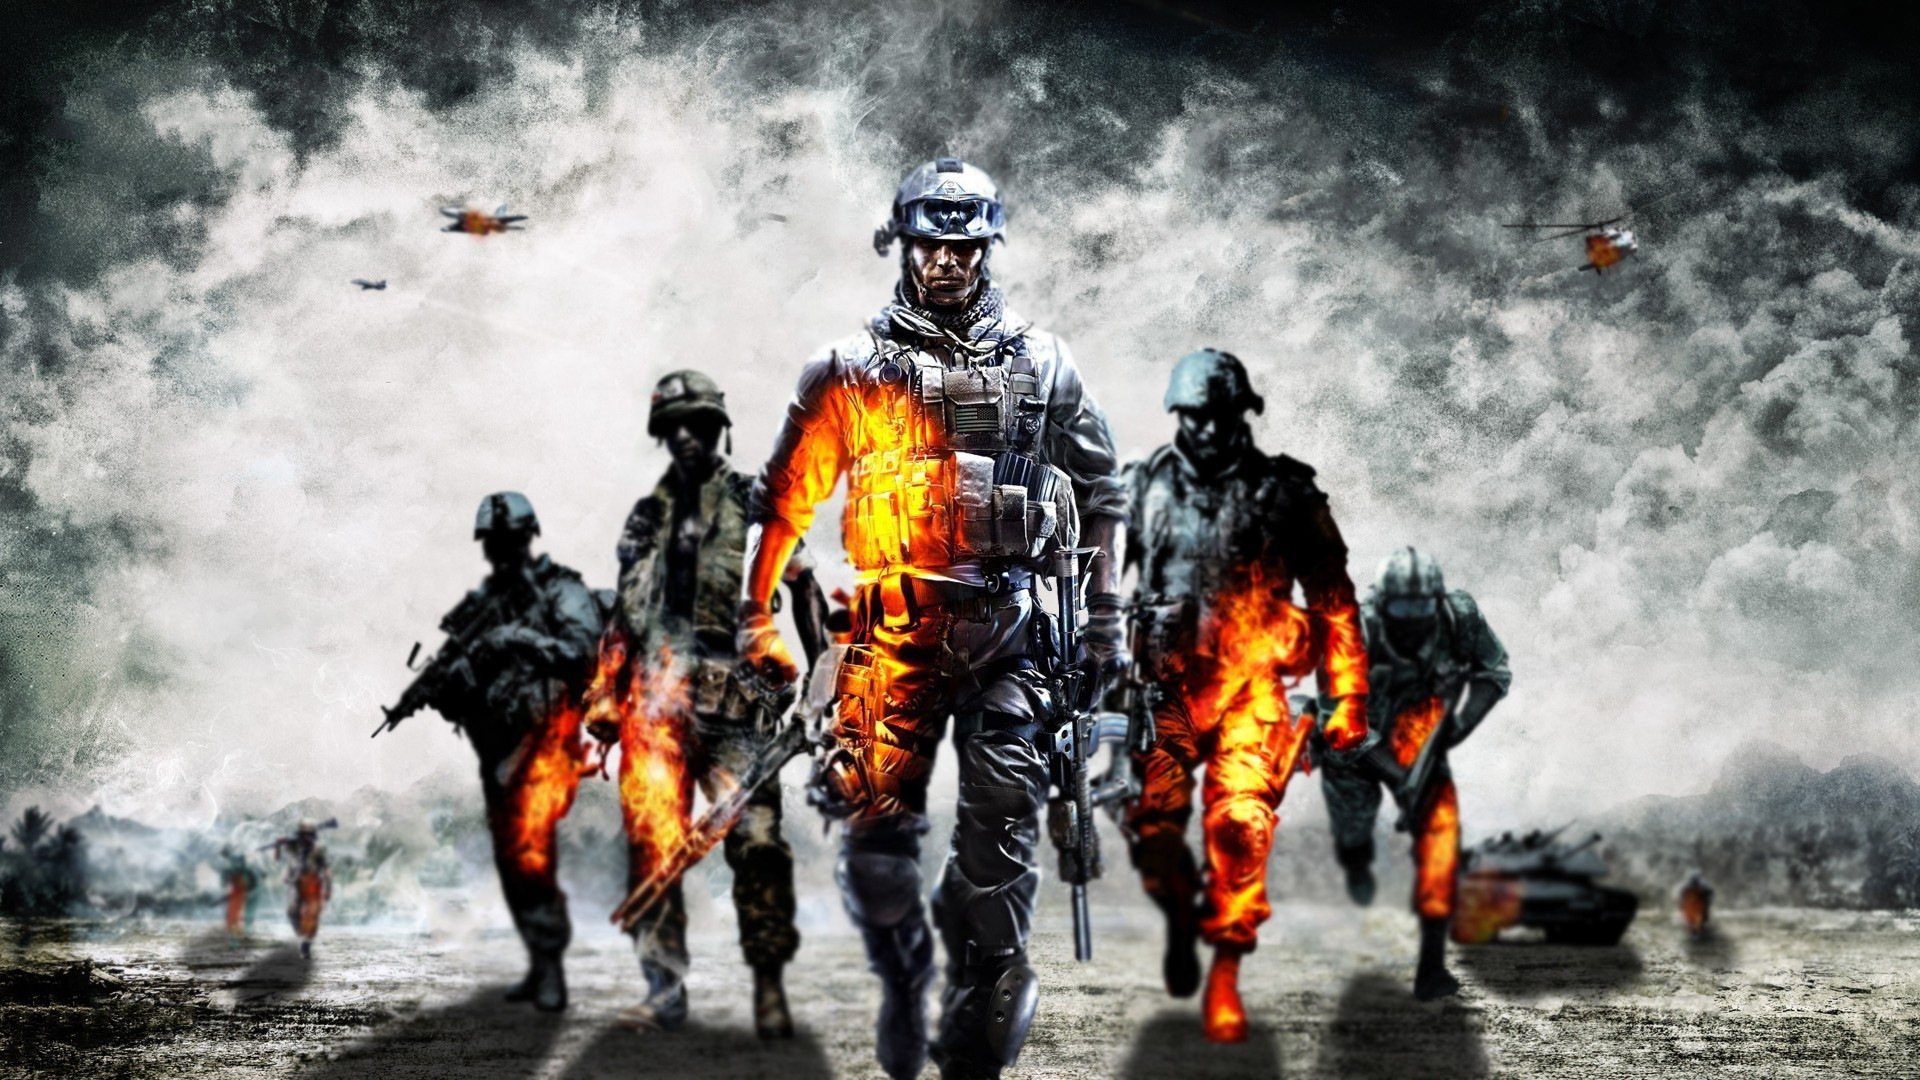 Cool Battlefield 4 Fire Armor In Black Background: Battlefield 4 Backgrounds HD (42 Wallpapers)